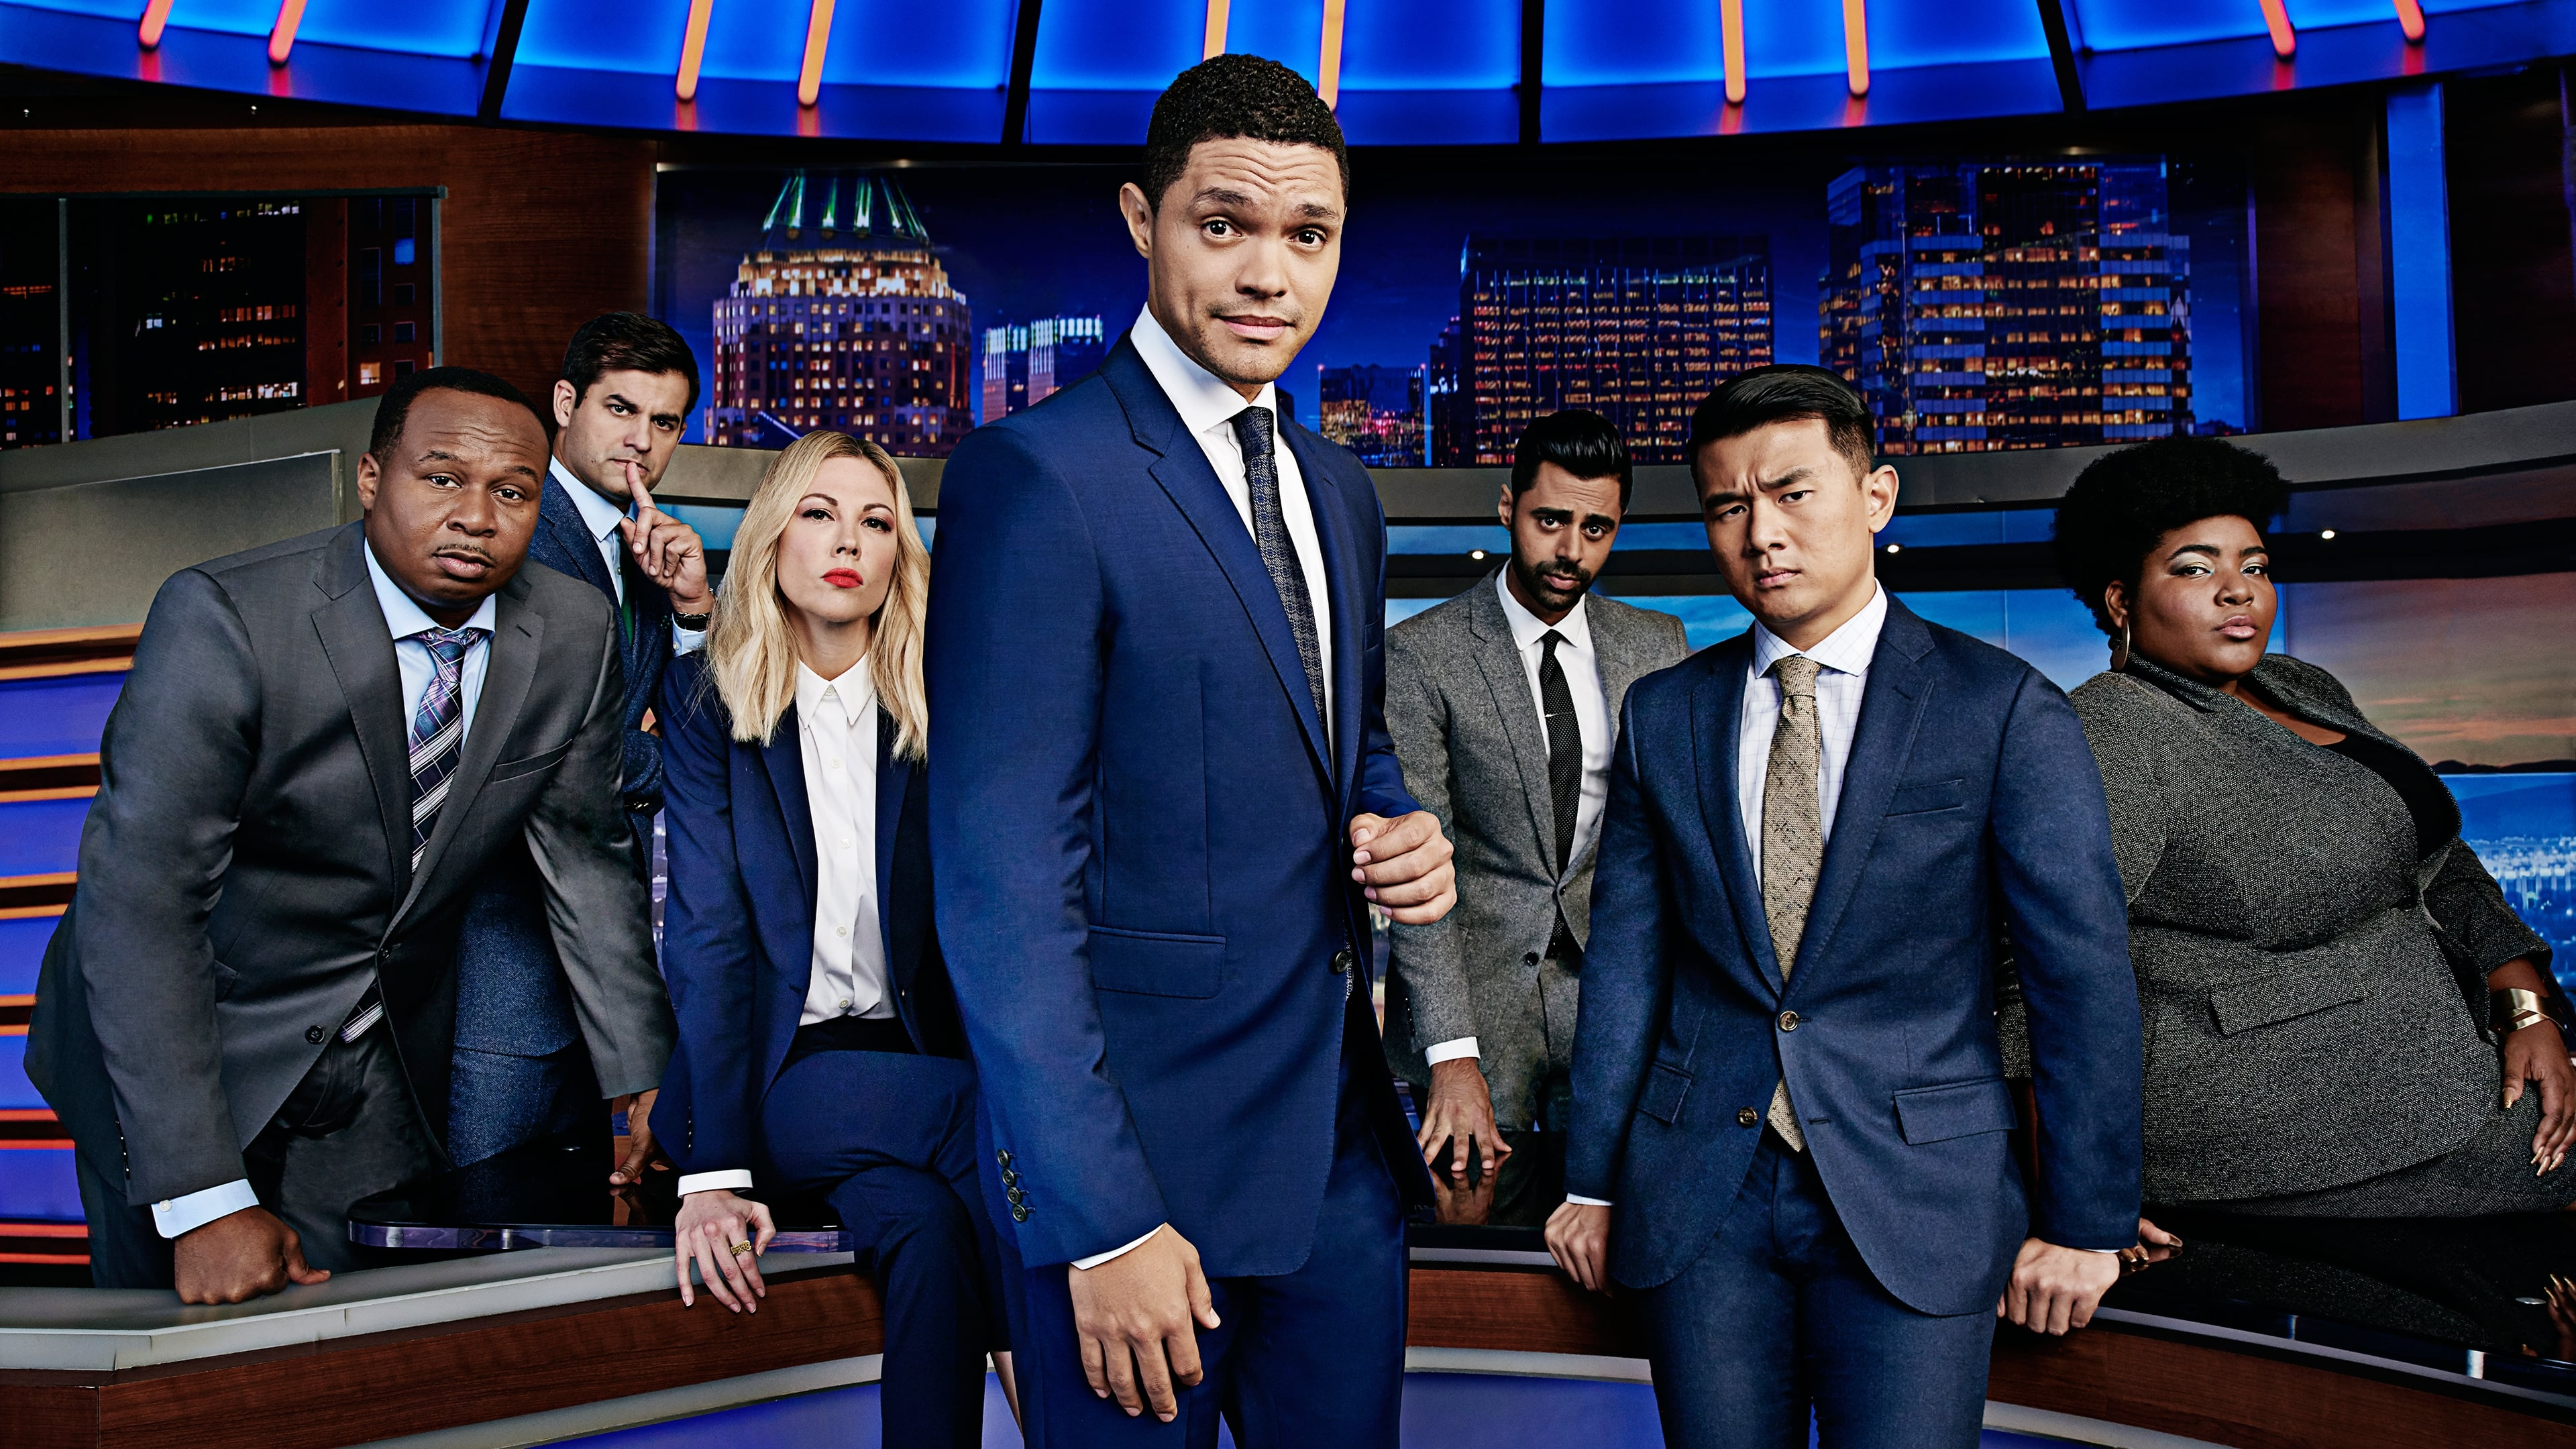 The Daily Show with Trevor Noah - Season 6